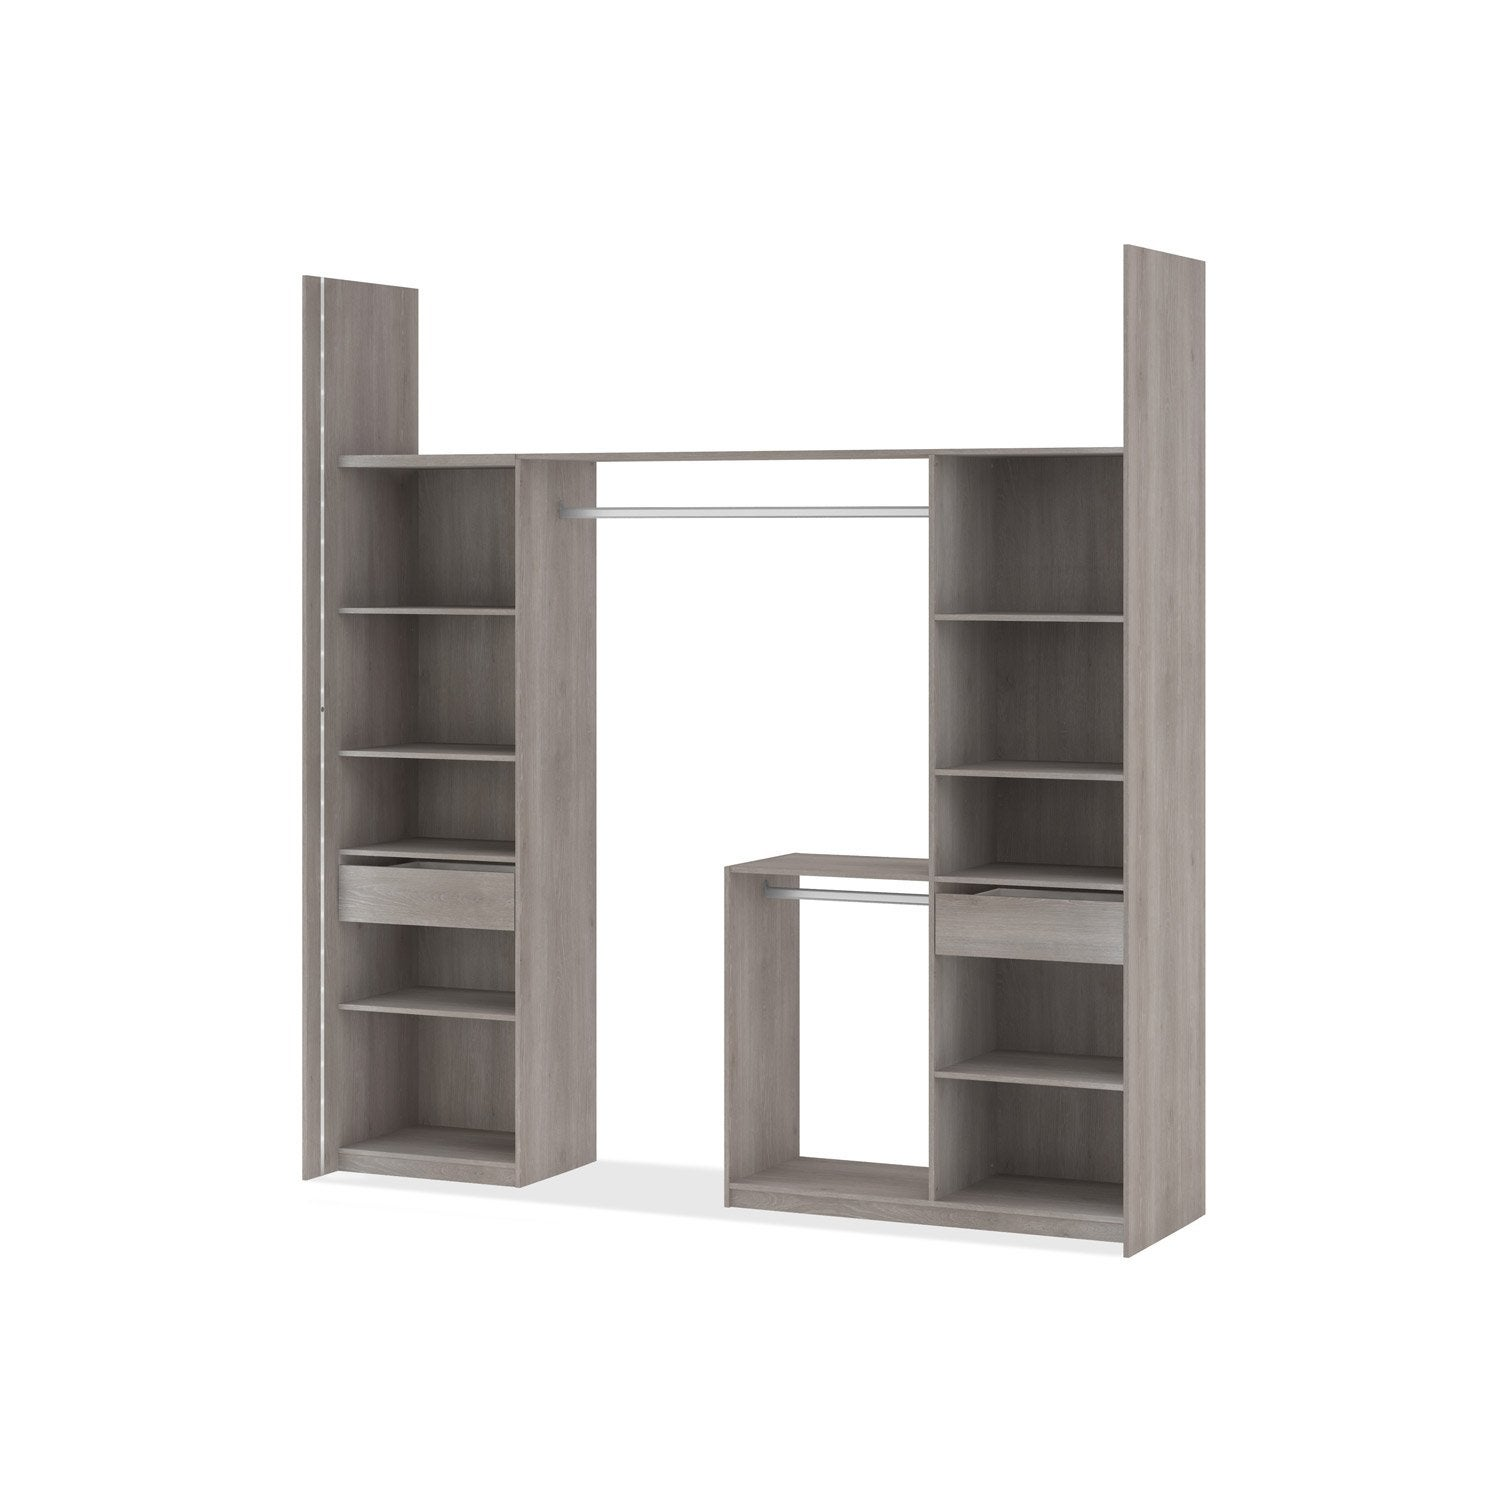 Configurateur dressing leroy merlin id es de conception son - Dressing le roy merlin ...